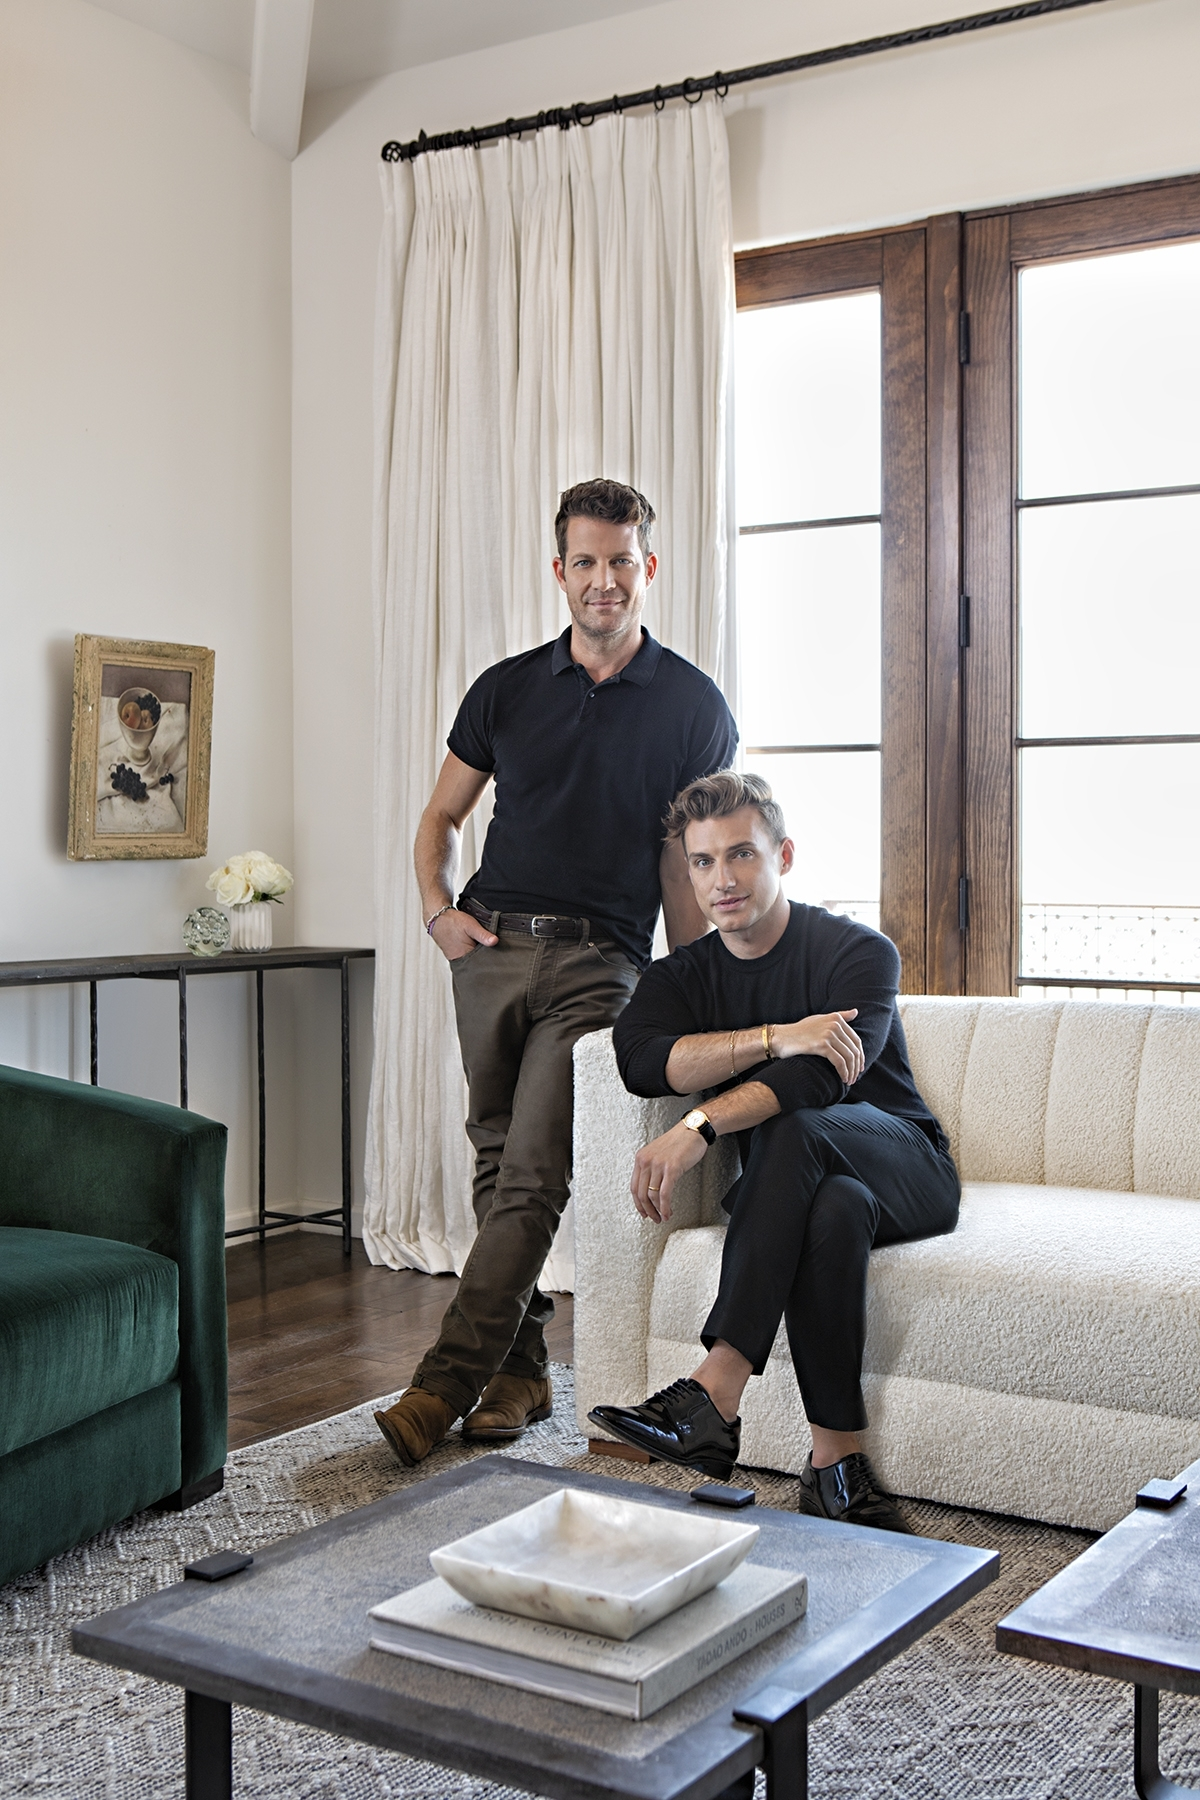 Nate Berkus & Jeremiah Brent's Newest Affordable Collection | Rue Pertaining To Soane 3 Piece Sectionals By Nate Berkus And Jeremiah Brent (View 24 of 25)